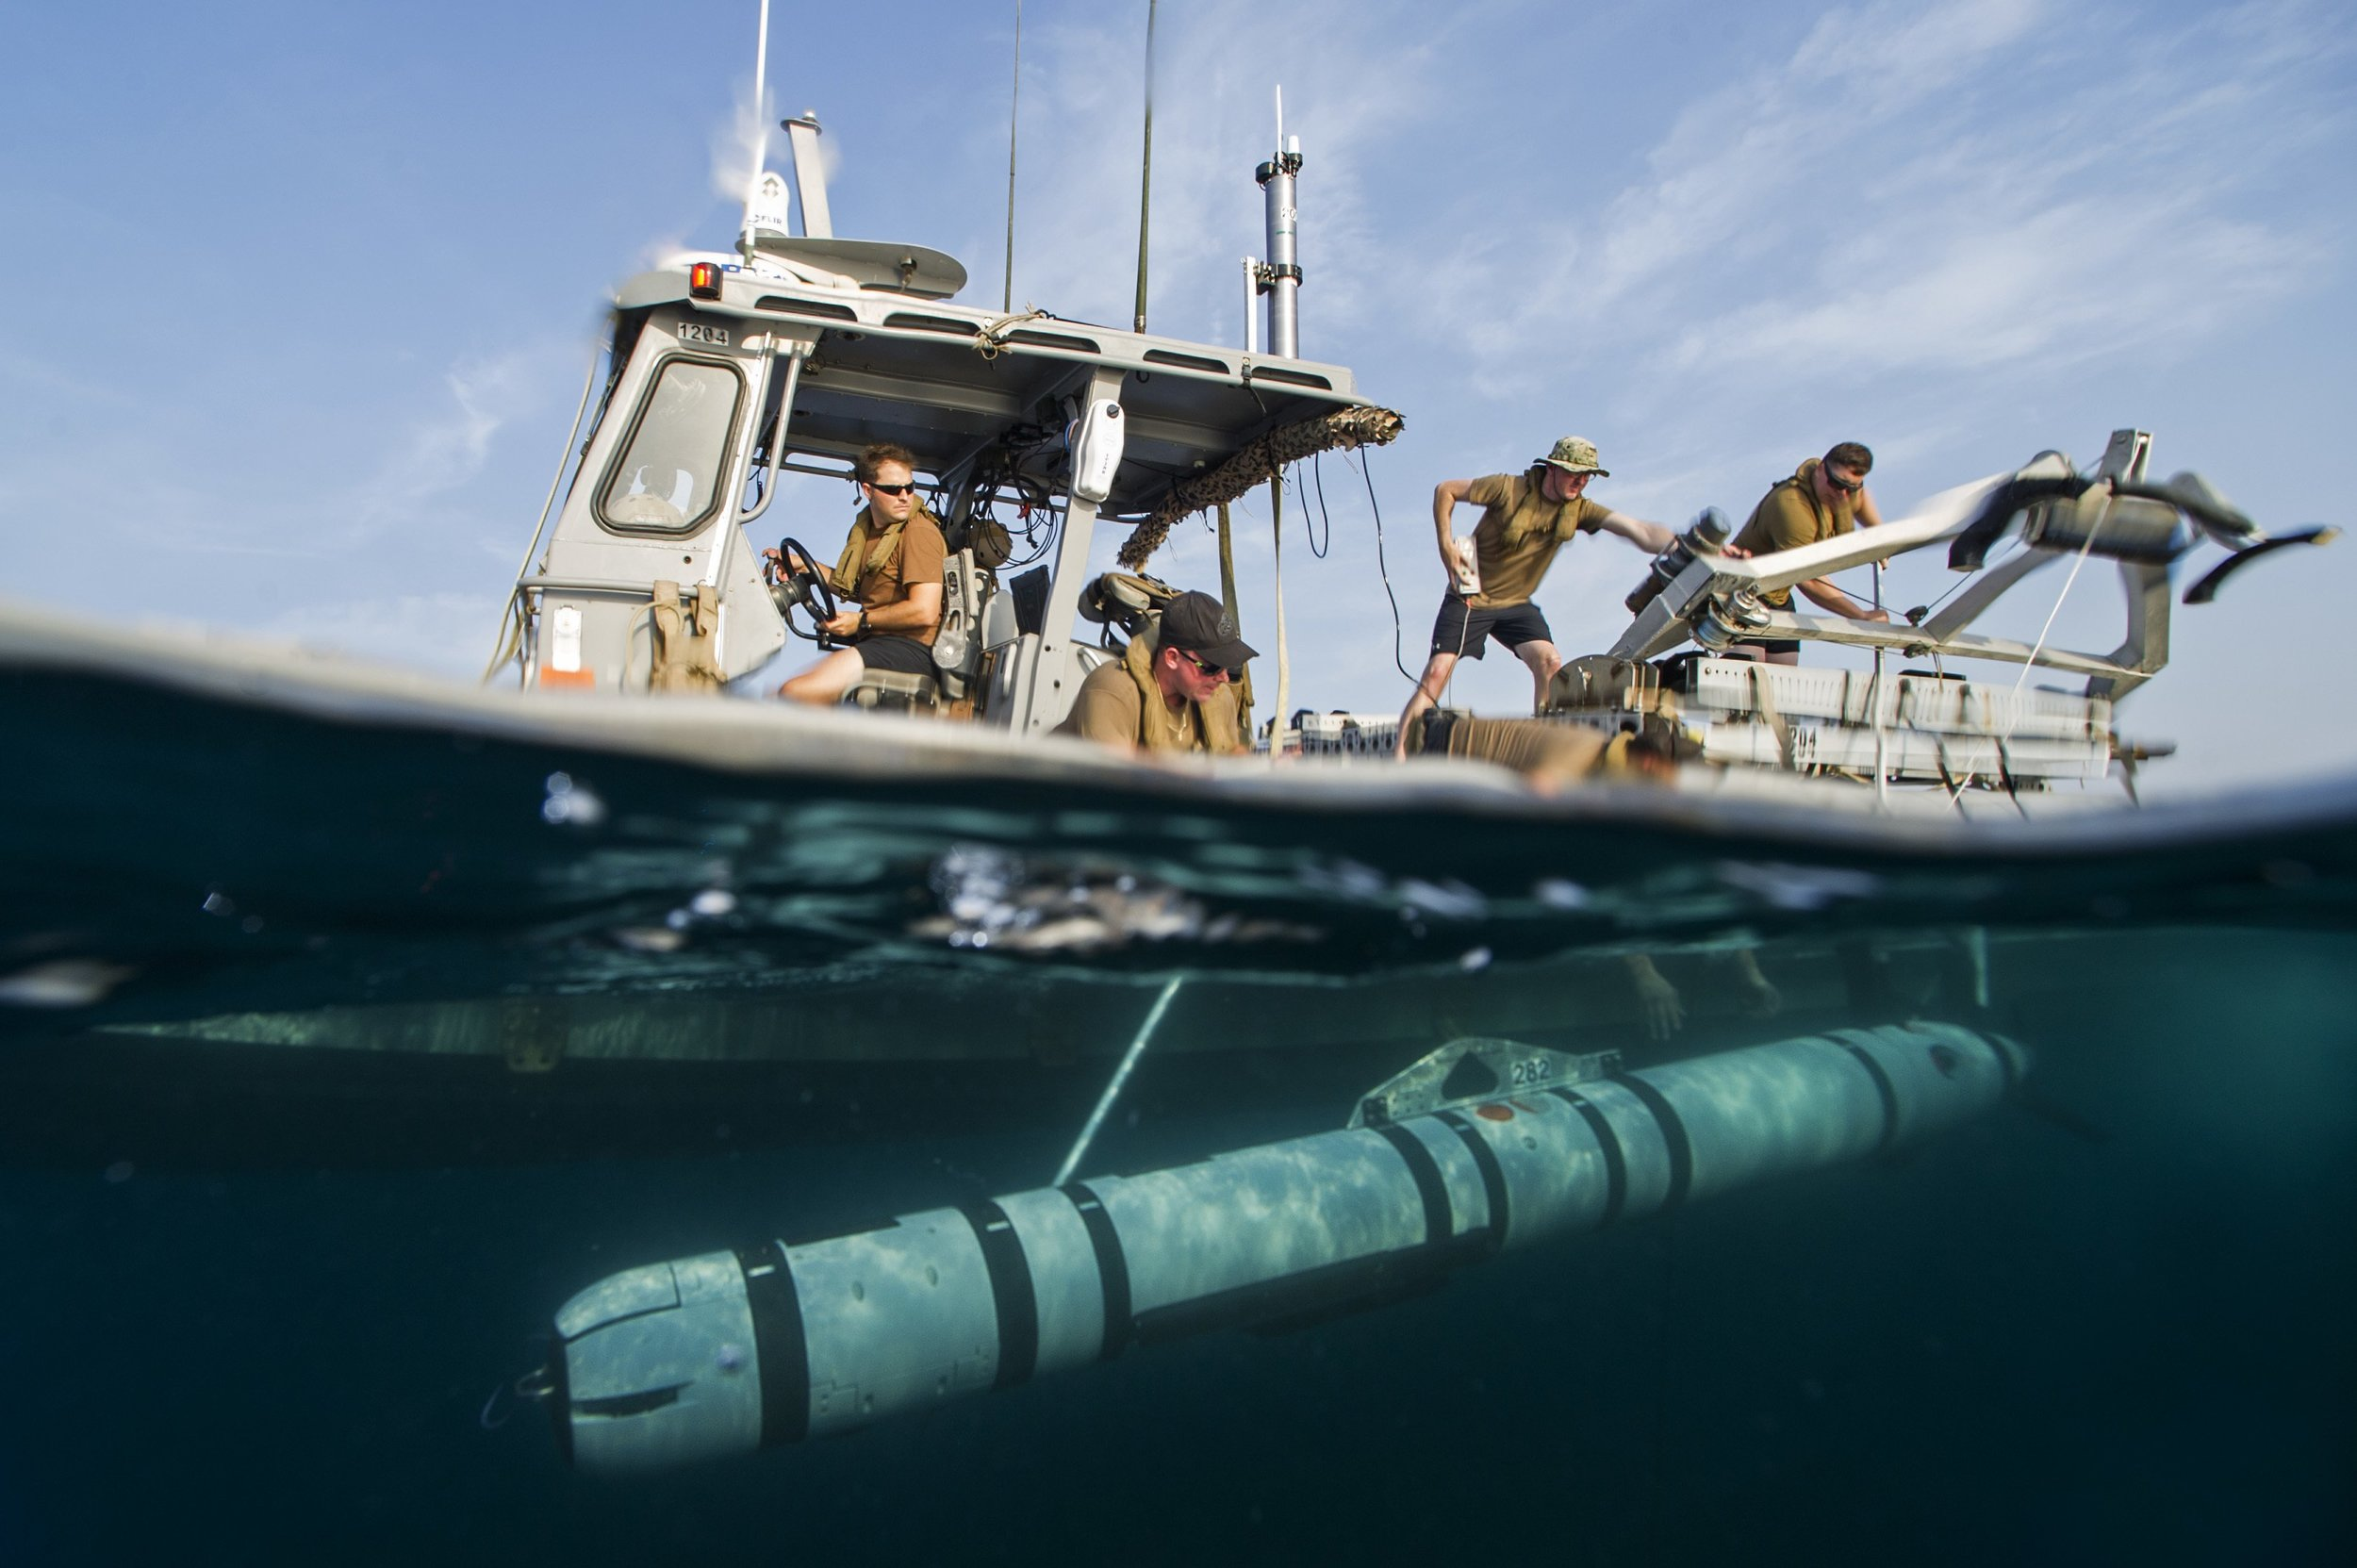 Crew members from Task Group 56.1 launch a MK 18 MOD 2 unmanned underwater vehicle from a rigid-hull inflatable boat during Squadex 2016, on Aug. 2, 2016, in the Persian Gulf. Squadex 2016 demonstrates U.S./U.K. mine detection capabilities in the U.S. 5th Fleet area of operations. US Navy photo.